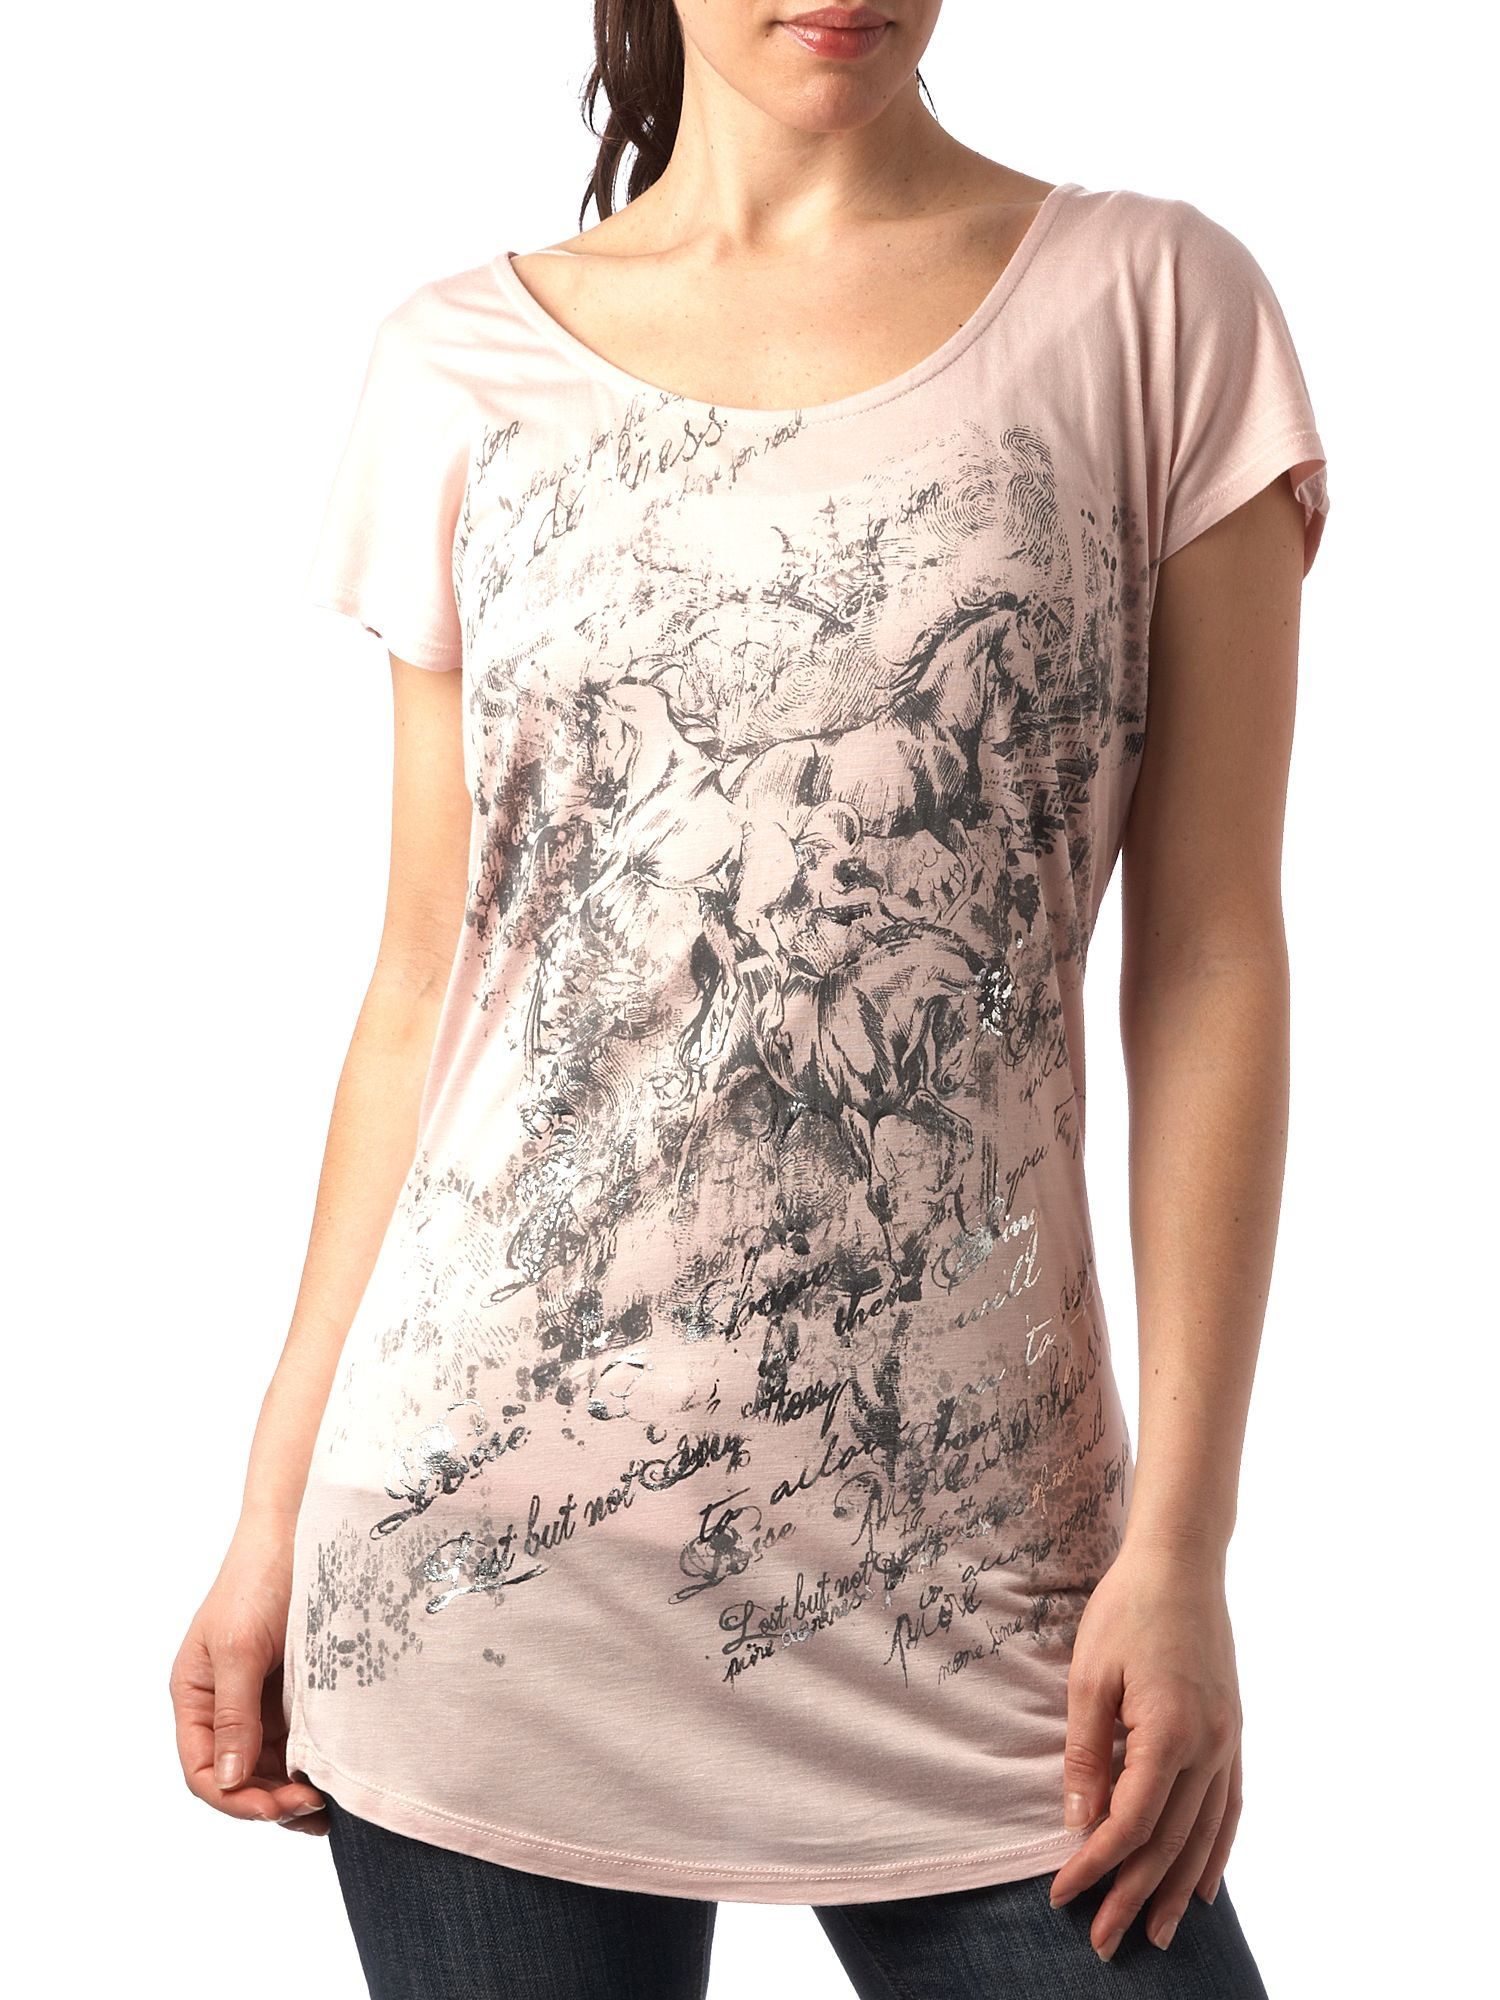 Therapy Horse print t-shirt Nude product image